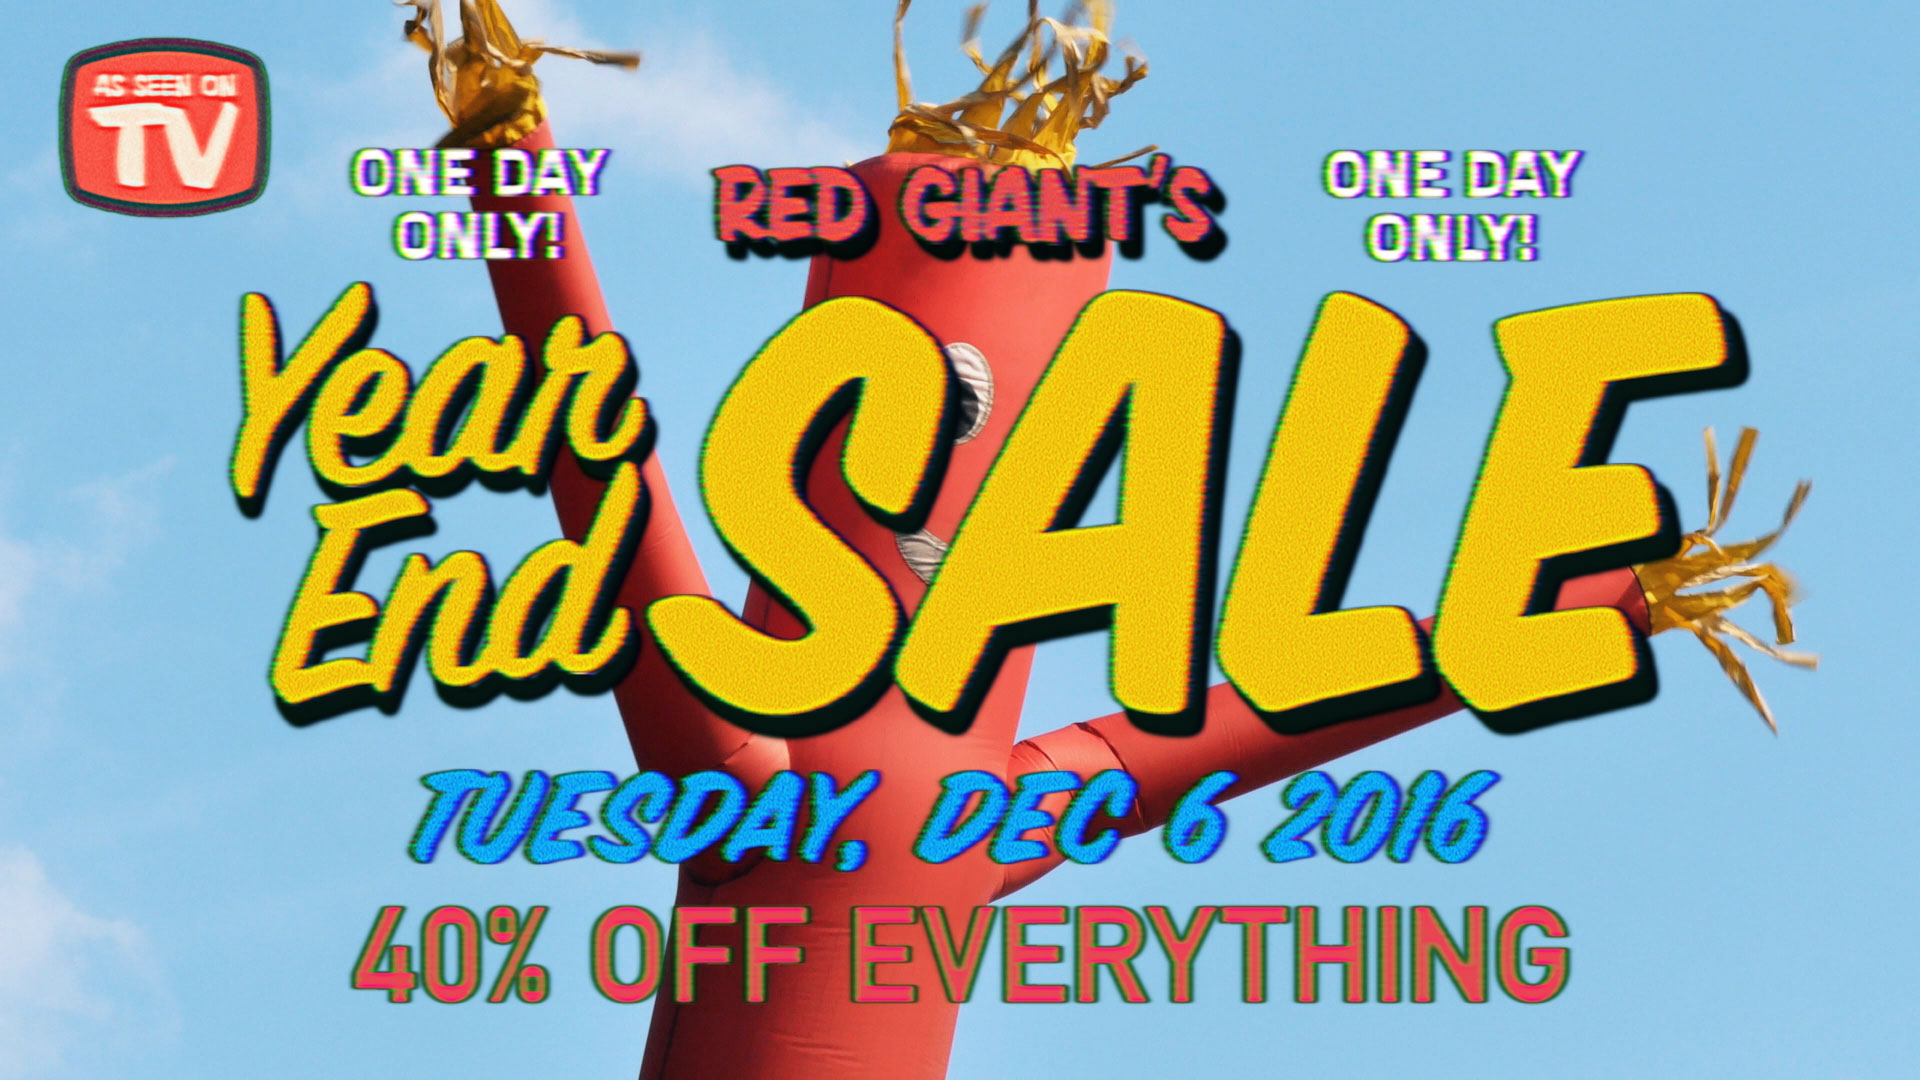 Red Giant Year End Sale - Save 40% Off Everything